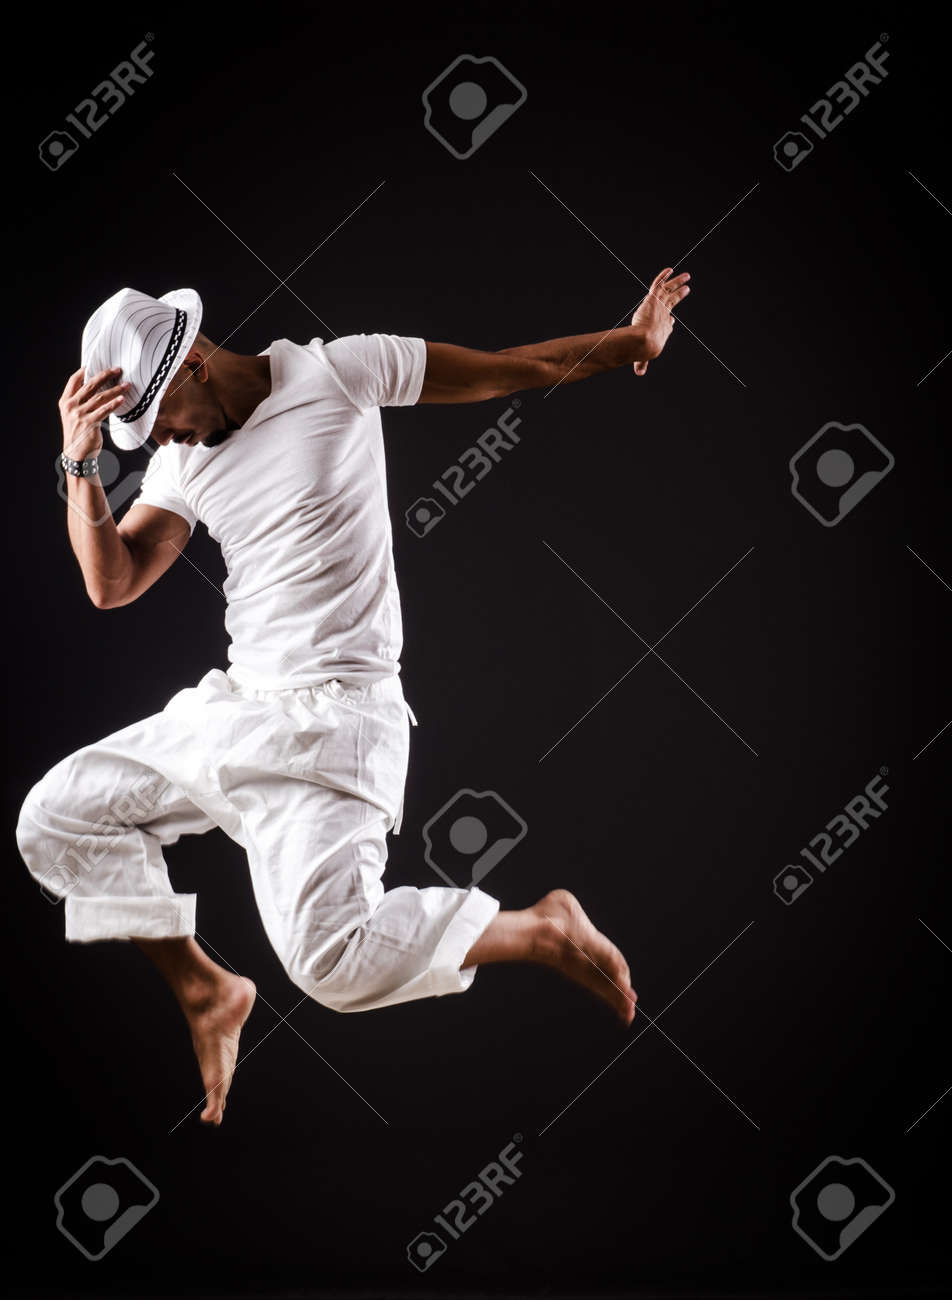 Dancer dancing dances in white clothing Stock Photo - 19292425